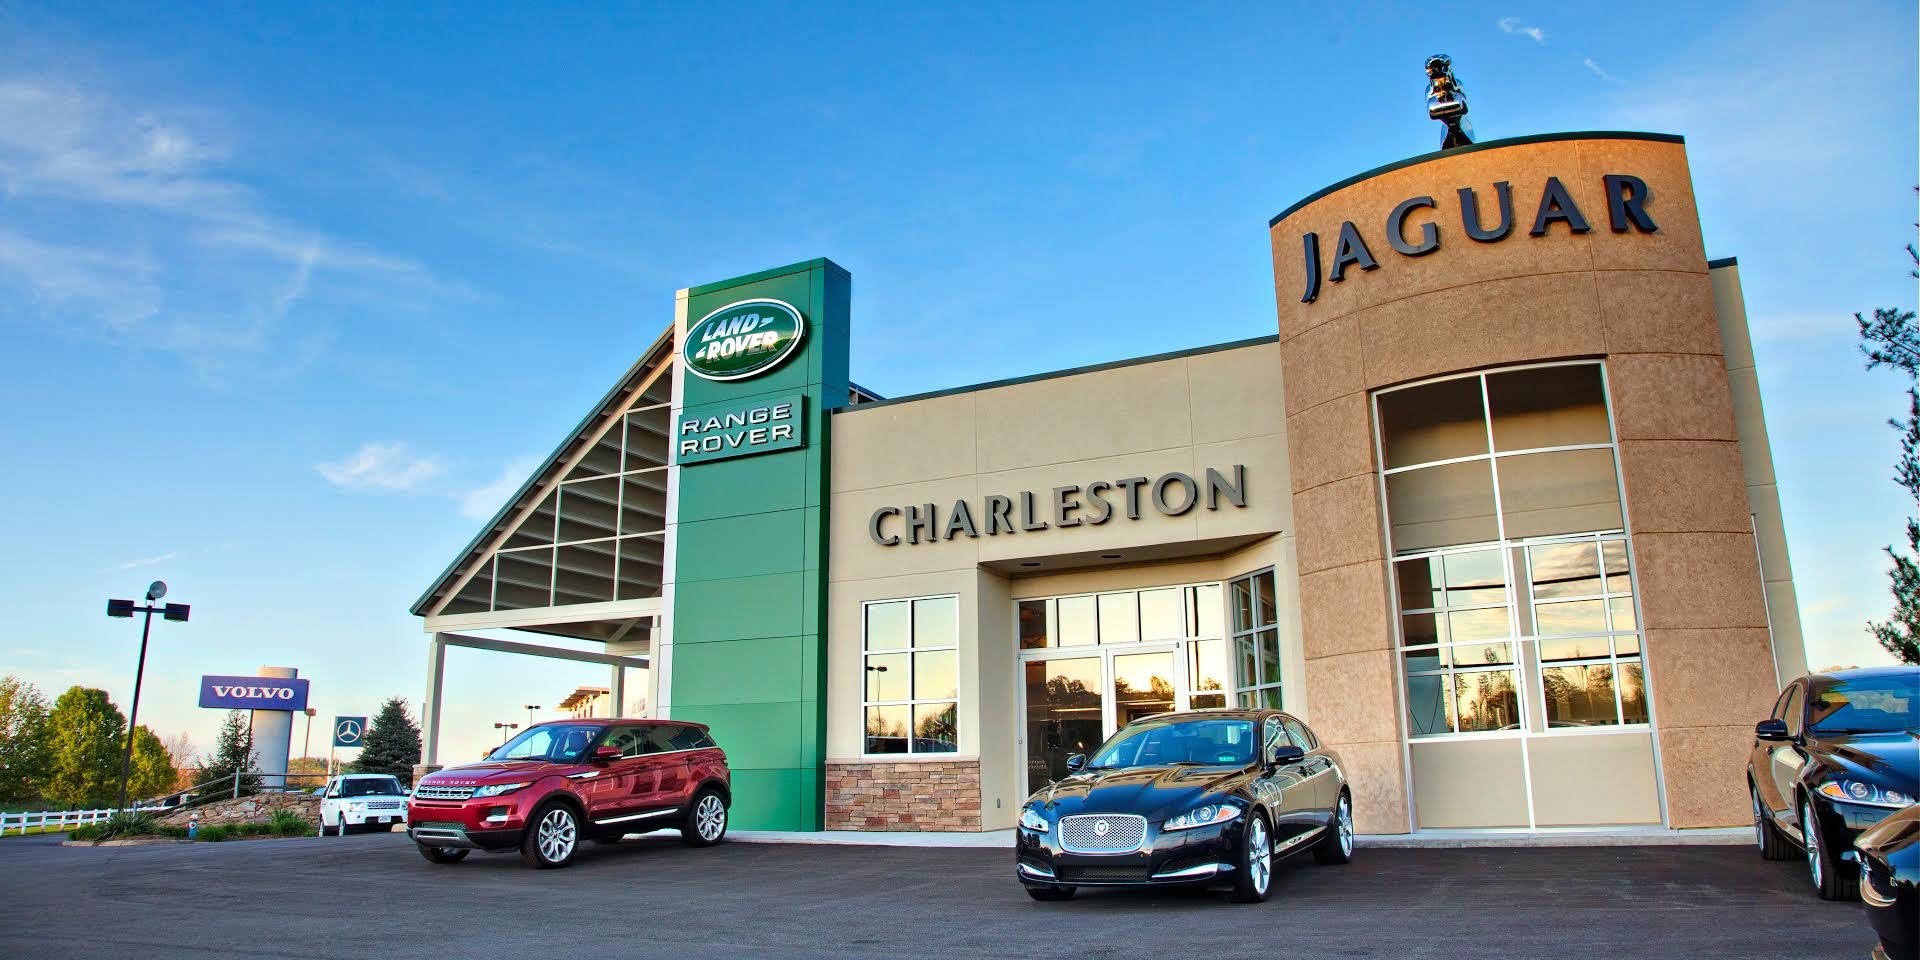 Jaguar charleston in charleston wv 25309 for Wv dept motor vehicles charleston